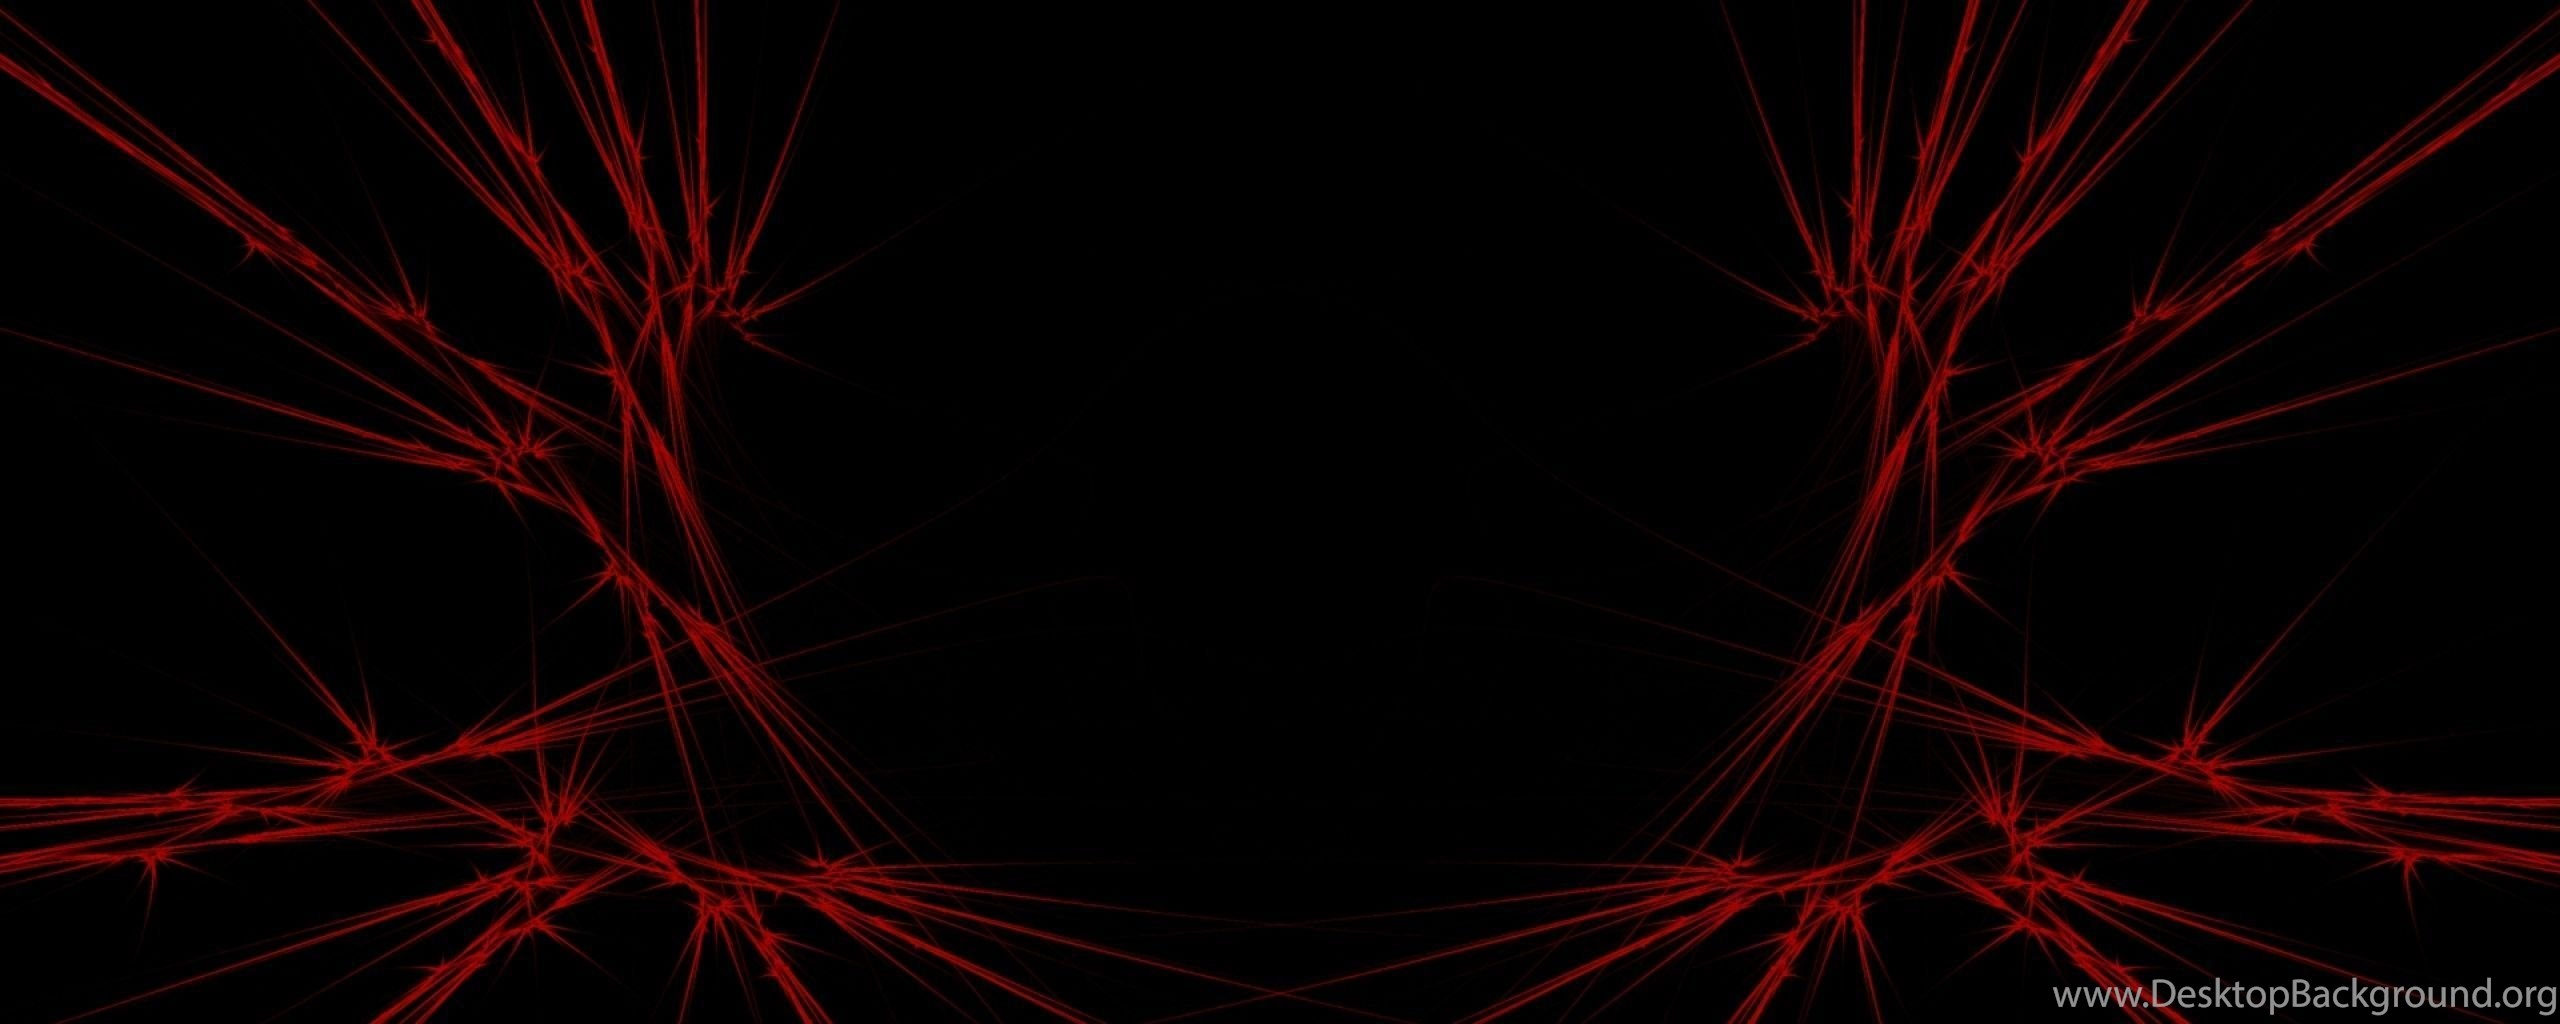 download wallpapers 2560x1024 red  black  abstract dual monitor     desktop background